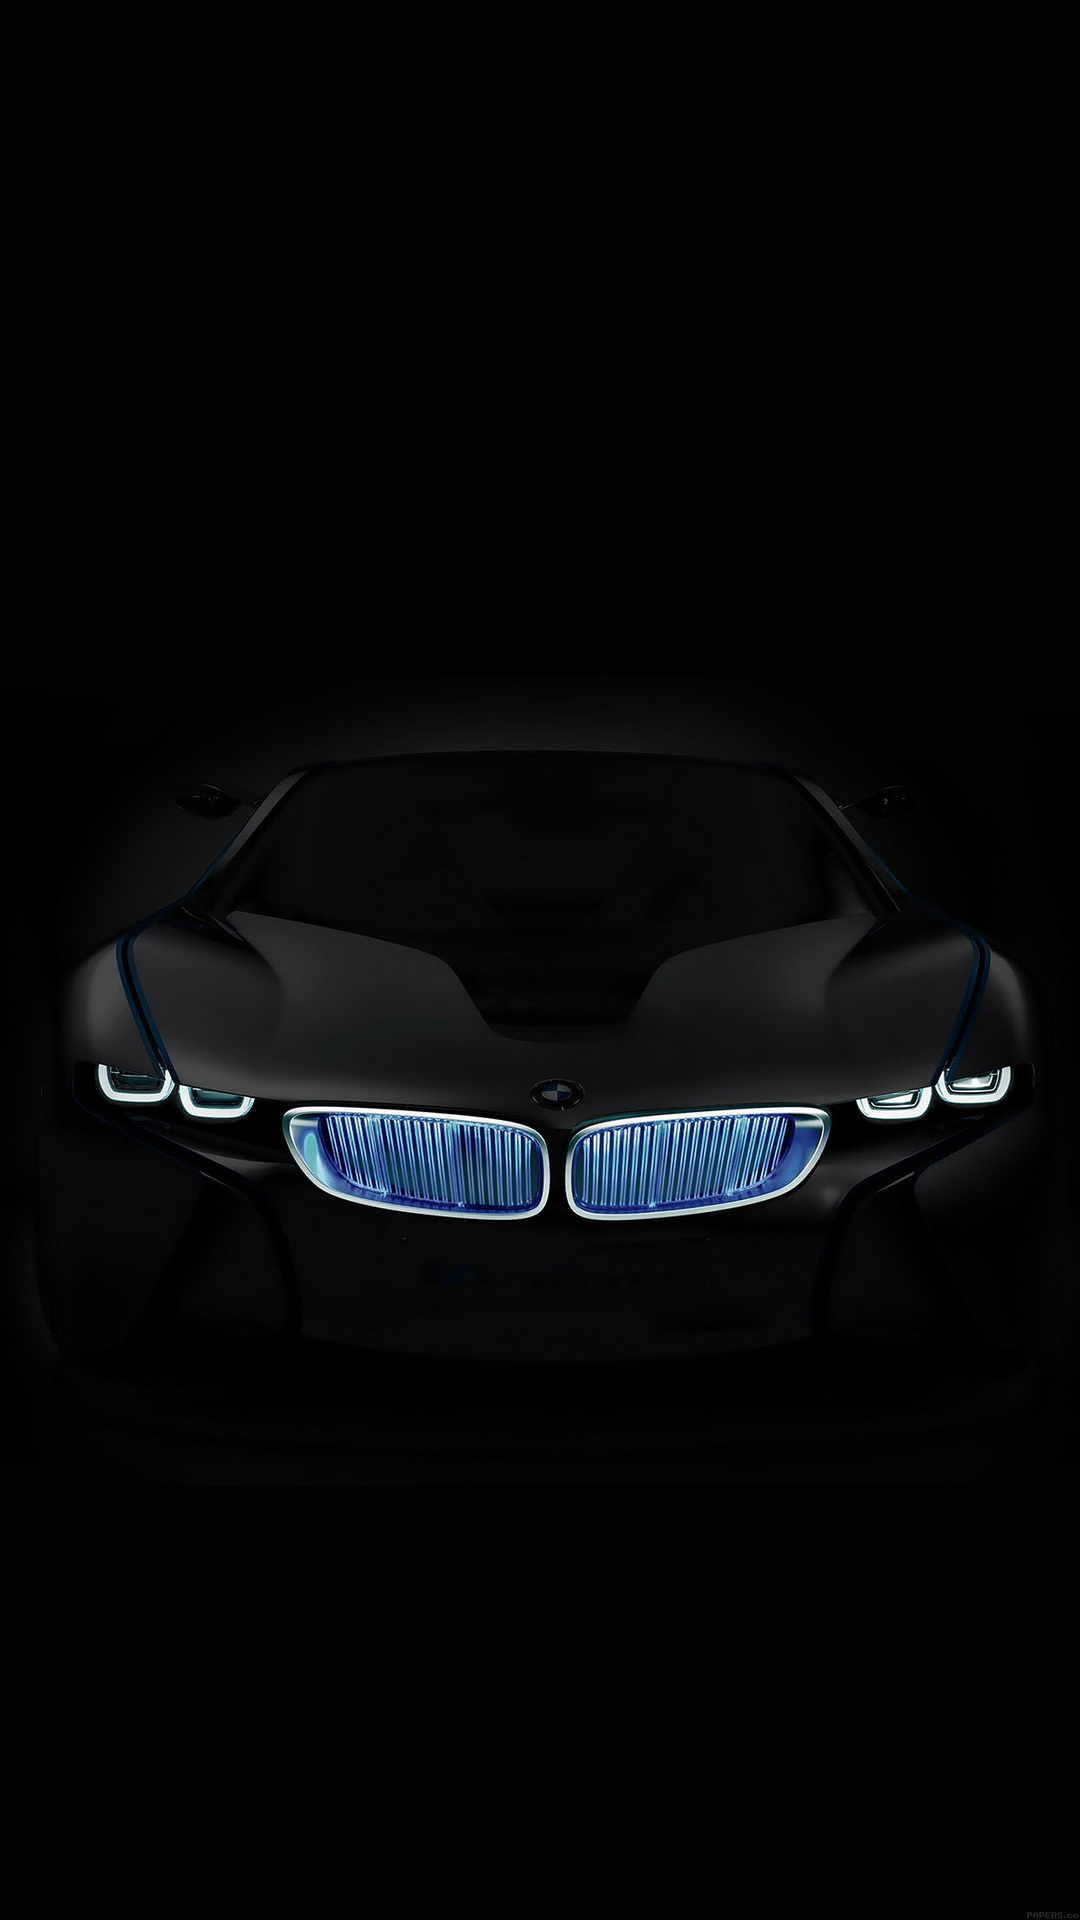 BMW In The Dark